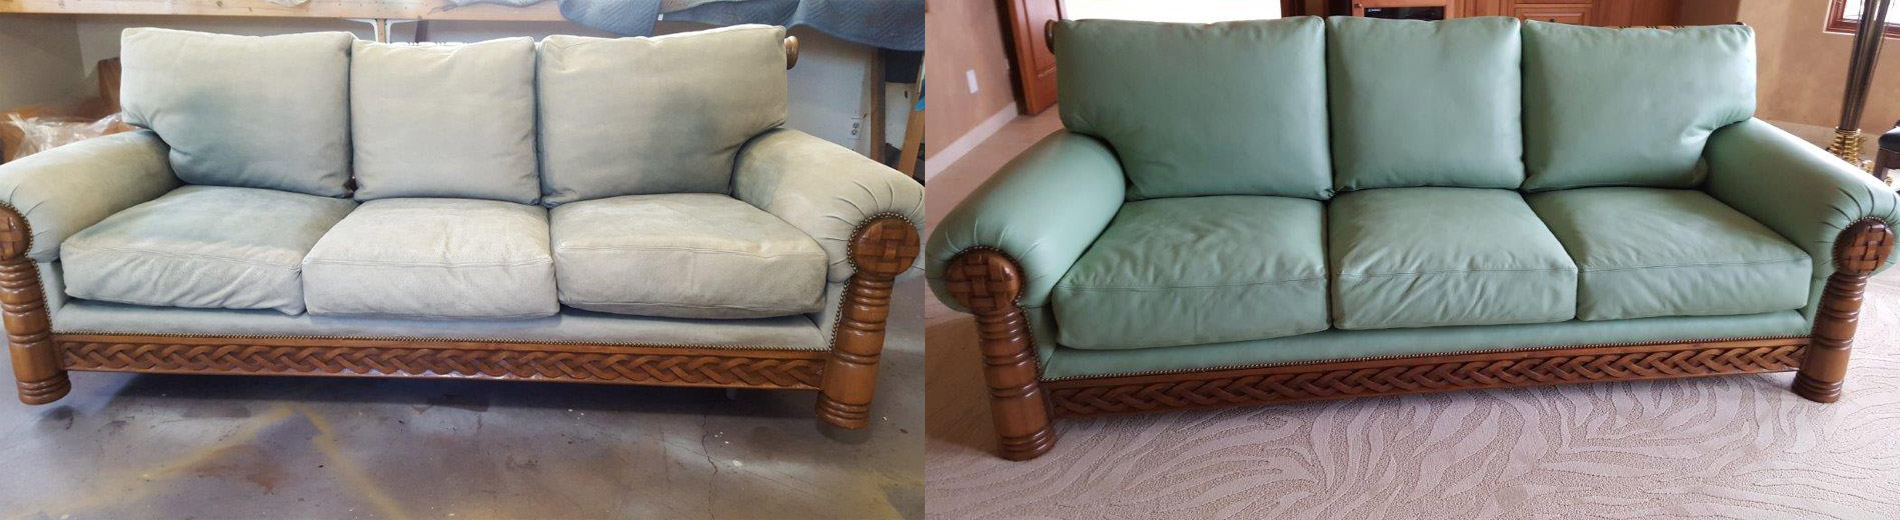 And Sofa Leather Furniture Repair In San Diego Couch And Sofa Repair